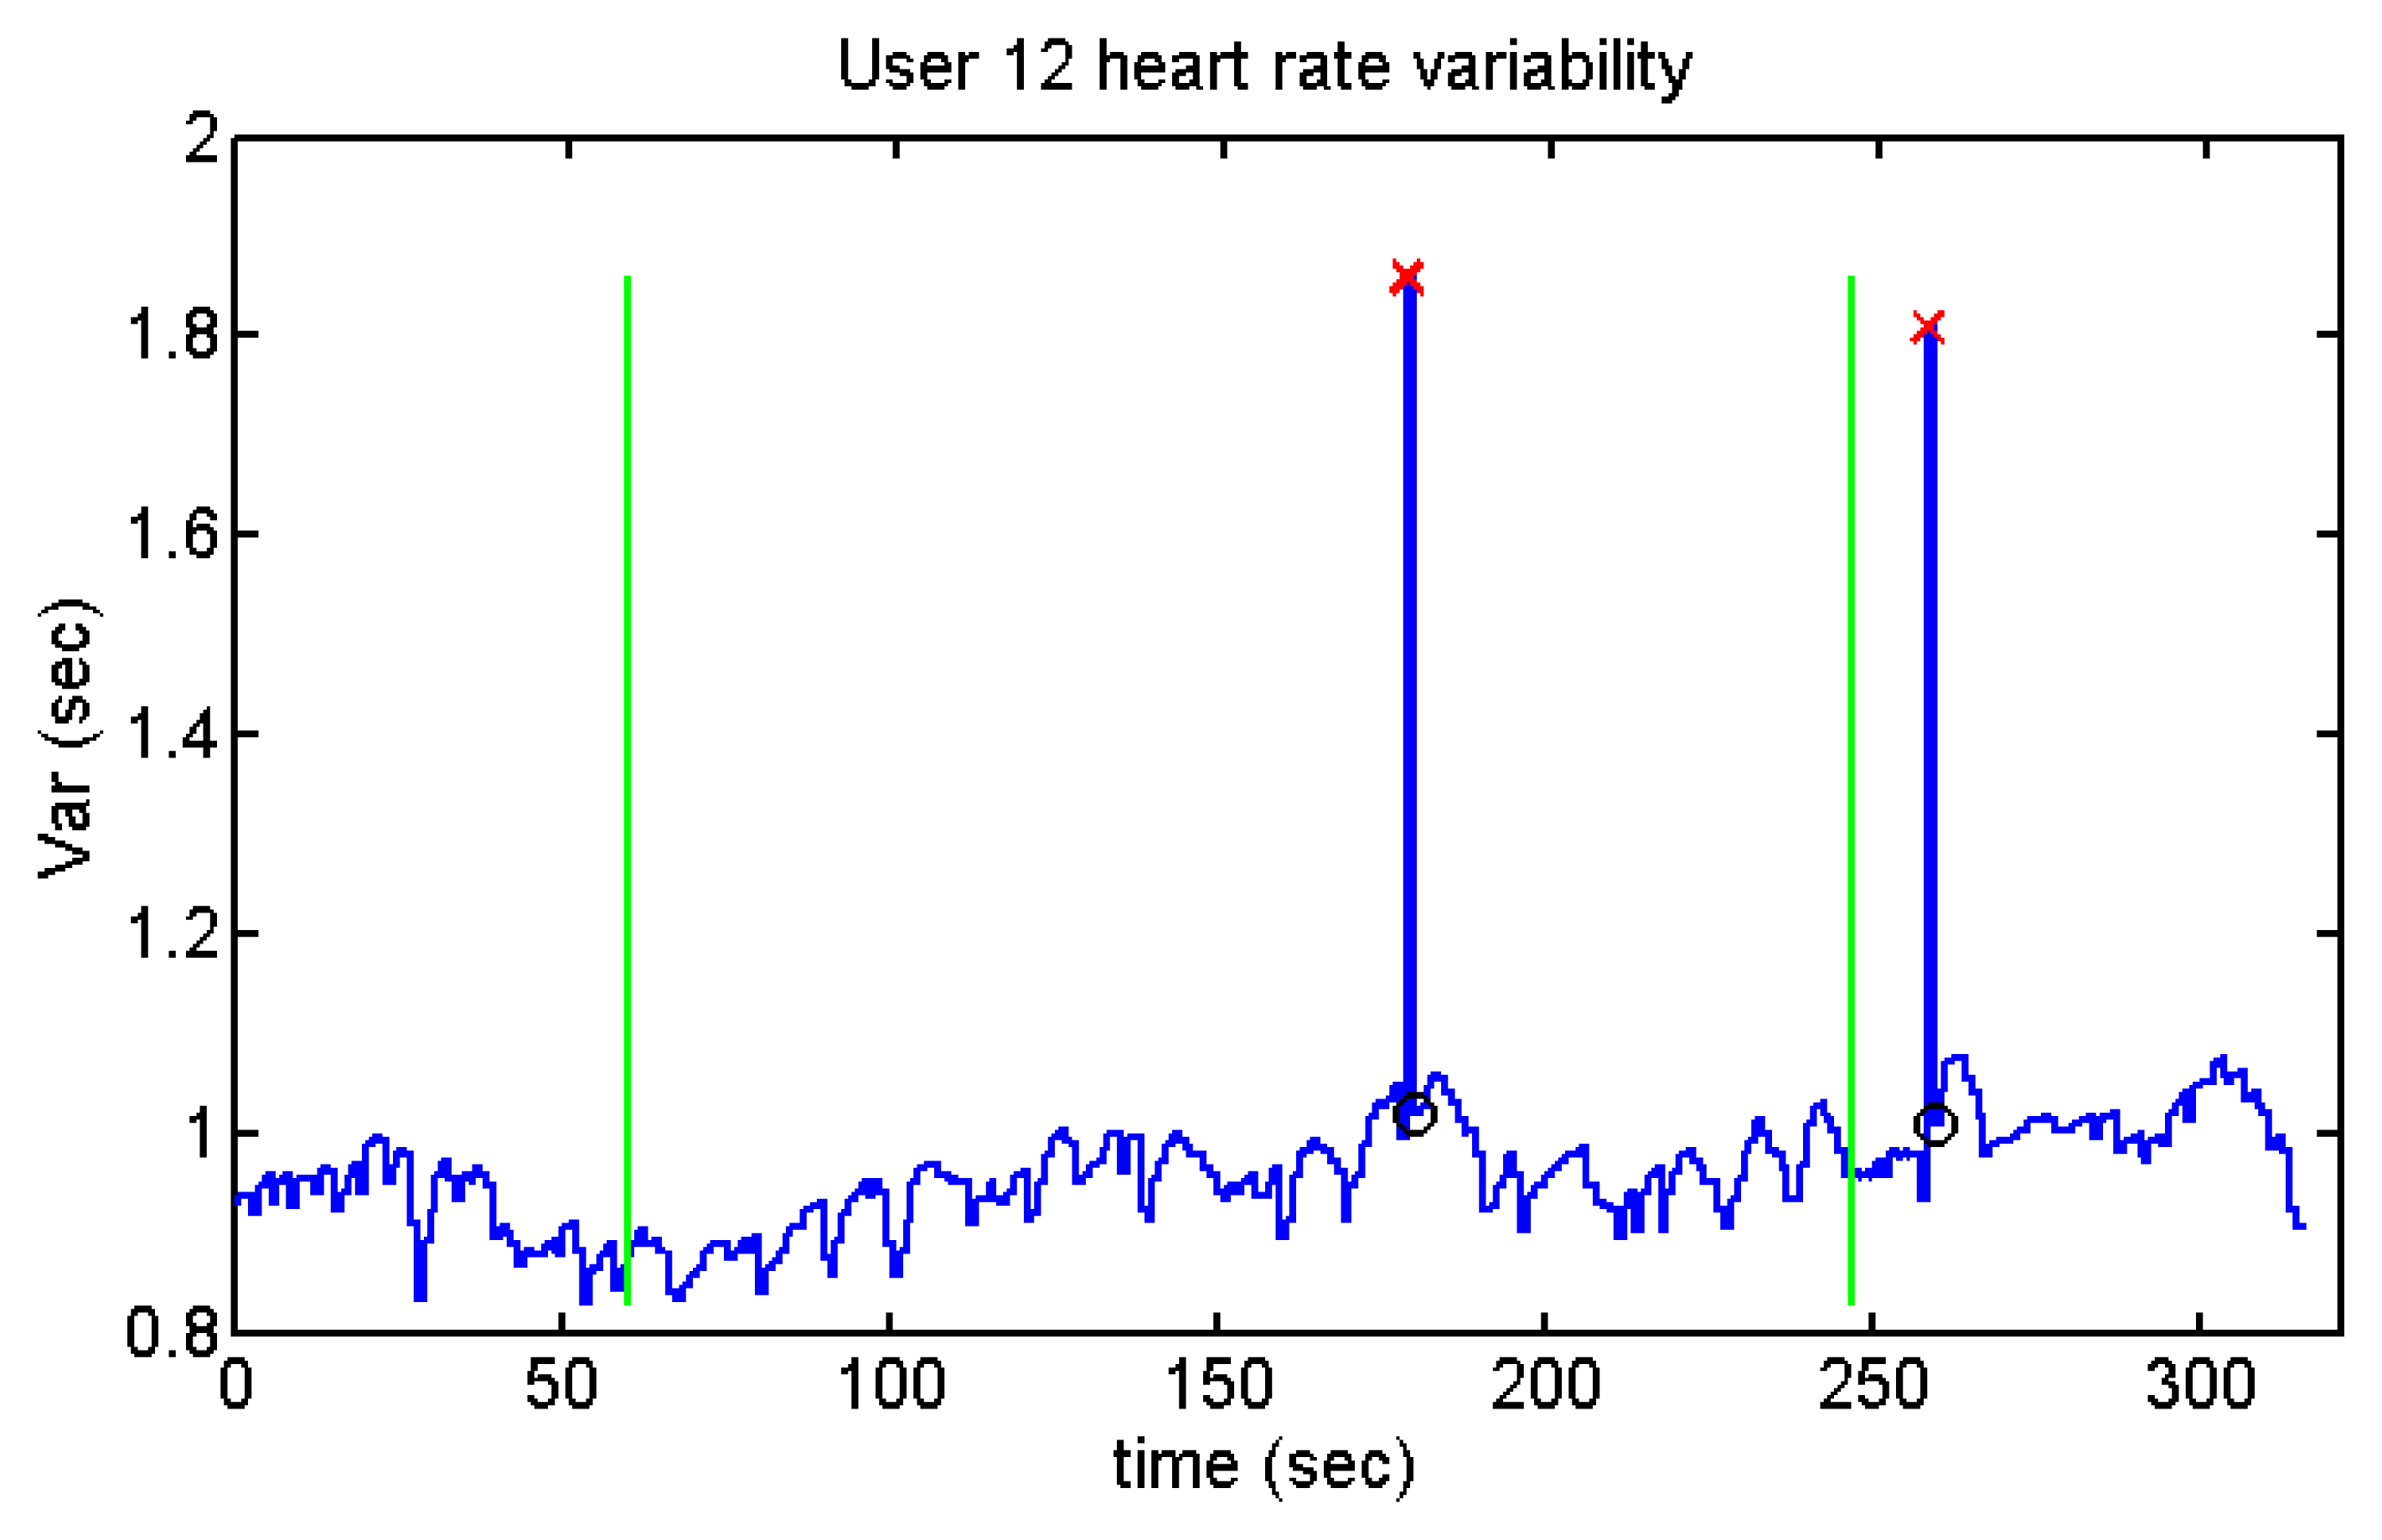 heart rate variability thesis Hrv4training helps you optimize your goals and prevent overtraining by measuring your heart rate and heart rate variability no sensors needed.